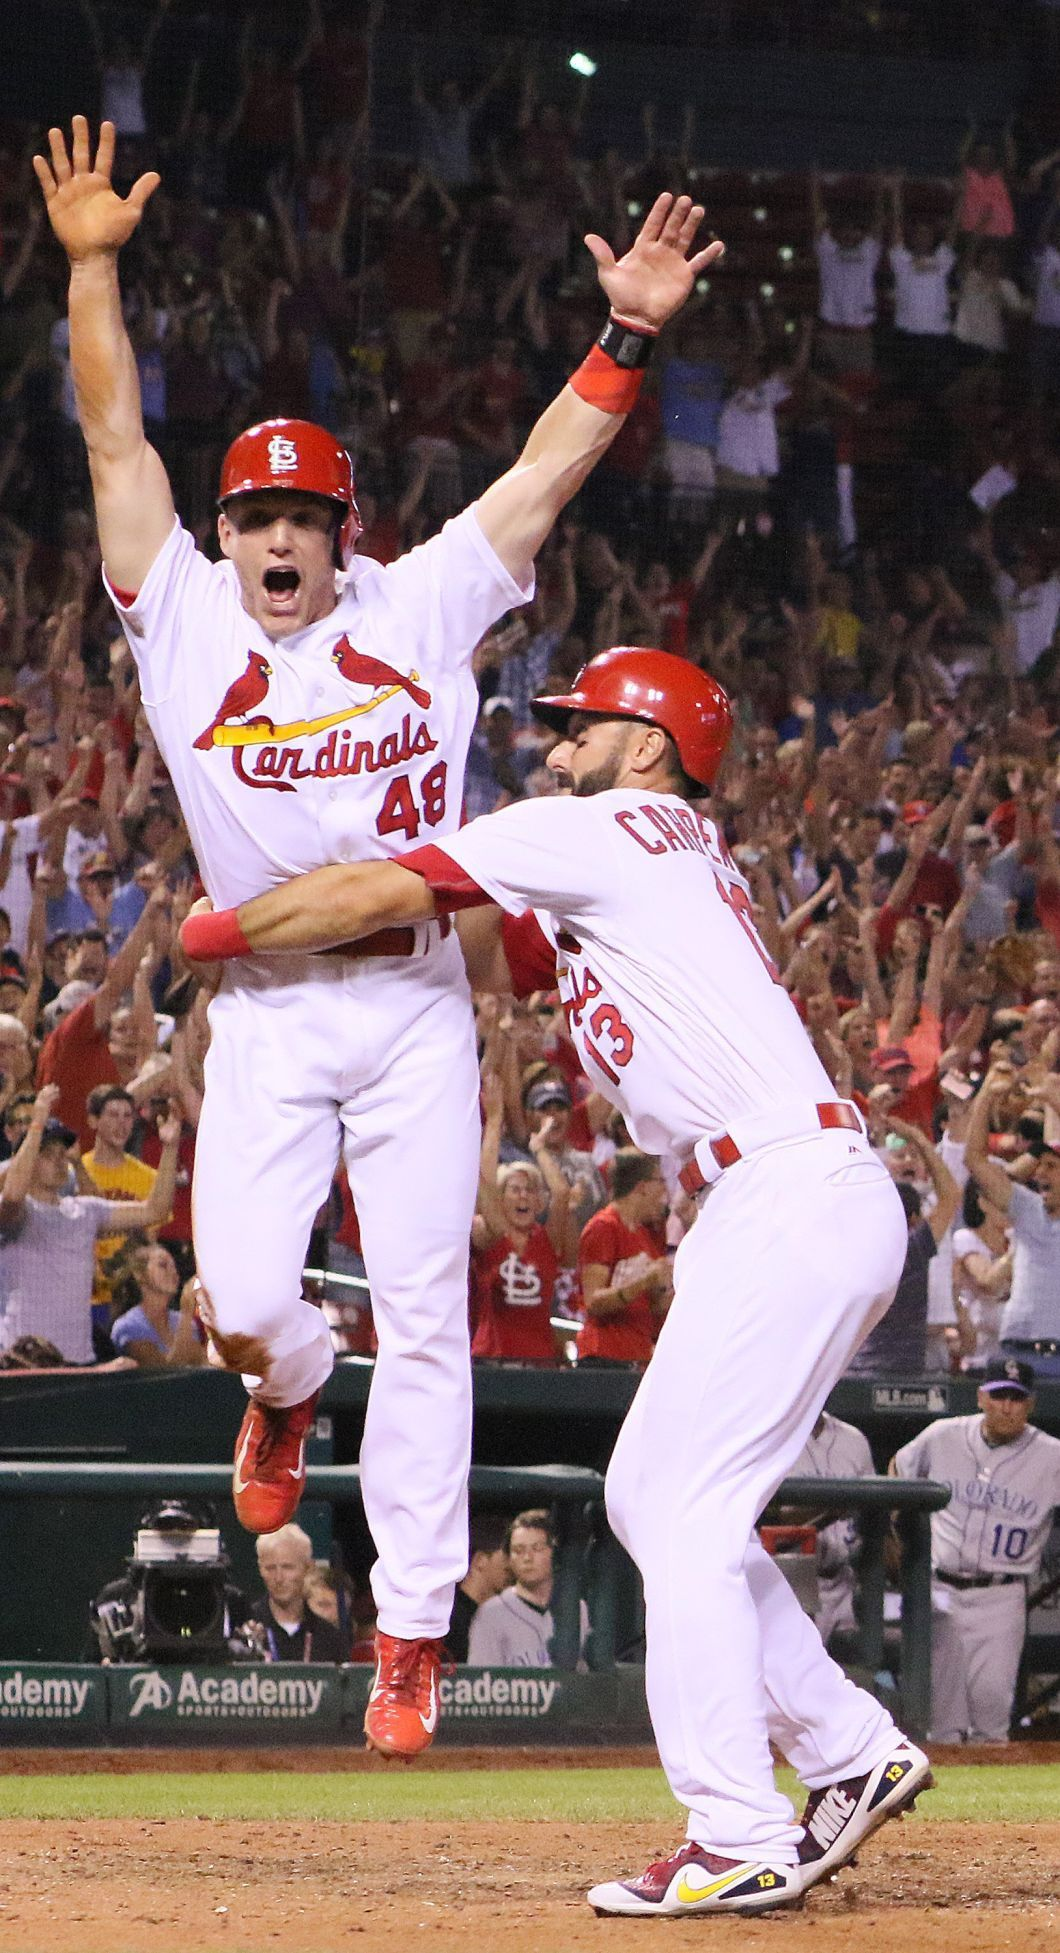 Photo of Rookie Bader gets 1st hit to set-up game-winning run as Cards beat Rockies